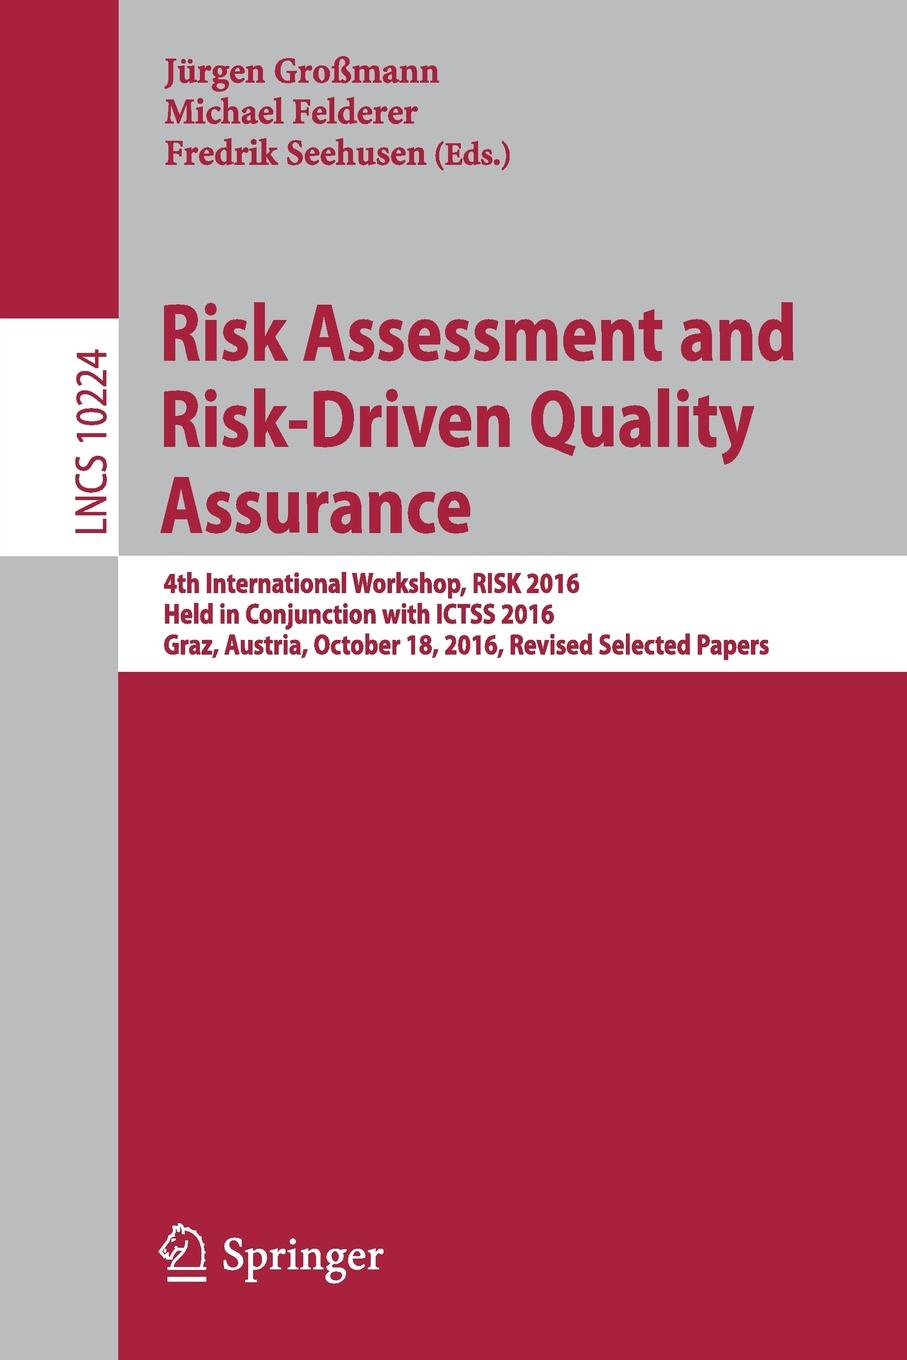 Risk Assessment and Risk-Driven Quality Assurance. 4th International Workshop, RISK 2016, Held in Conjunction with ICTSS 2016, Graz, Austria, October 18, 2016, Revised Selected Papers free shipping 5pcs lot rt8168b rt8168bgqw qfn laptop chips 100% new original quality assurance